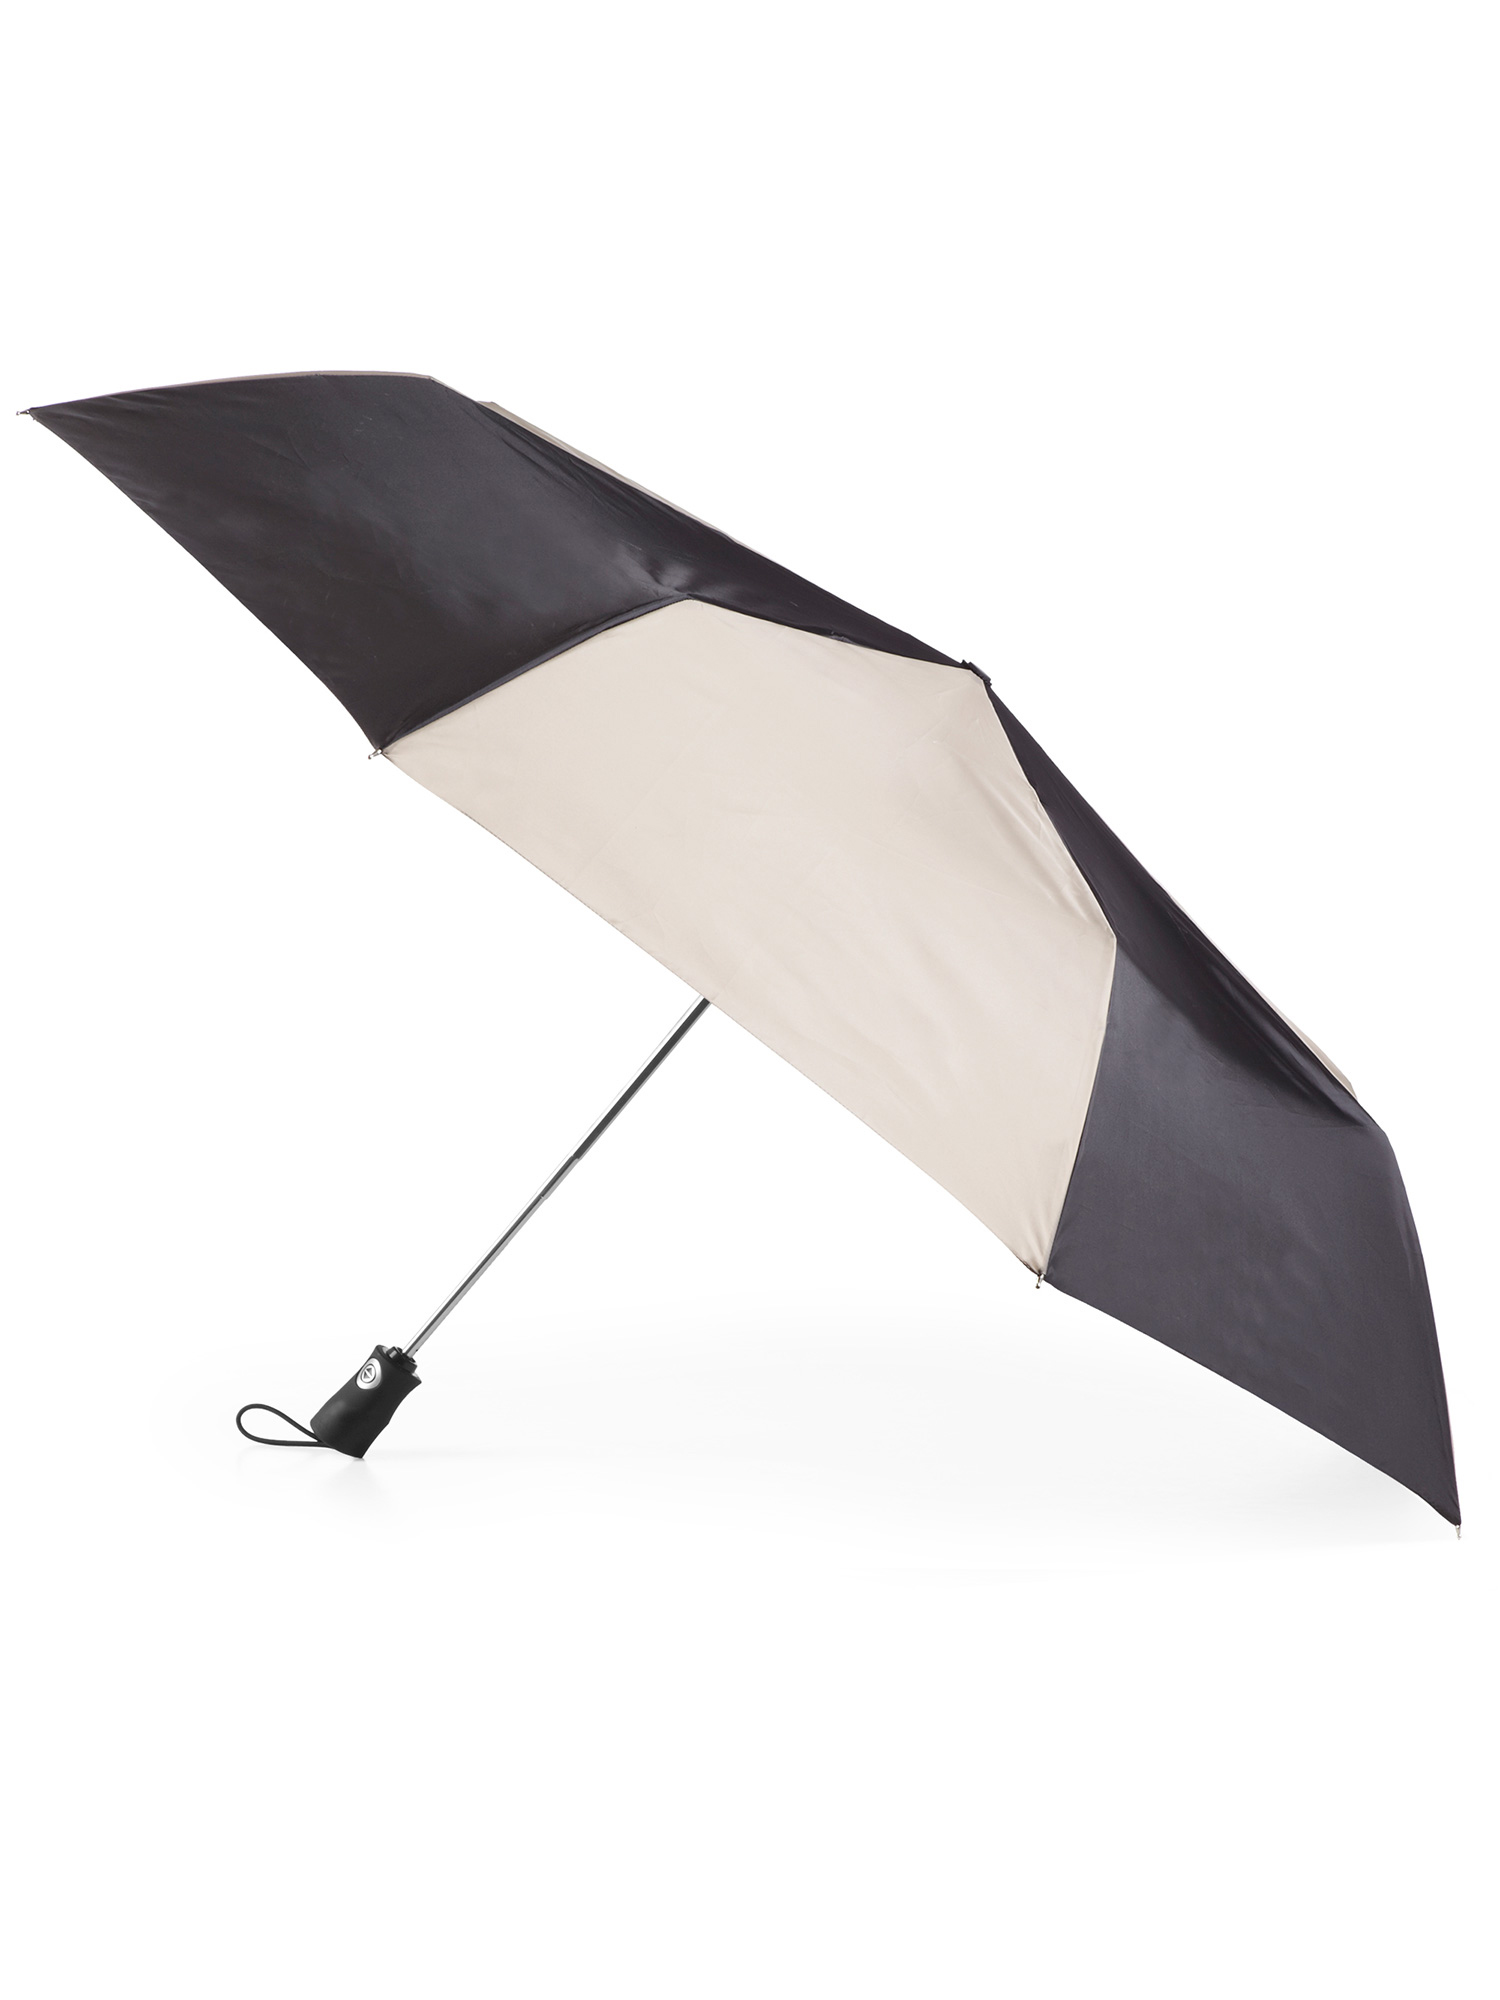 "totes Family Jumbo 55"" Canopy Umbrella"